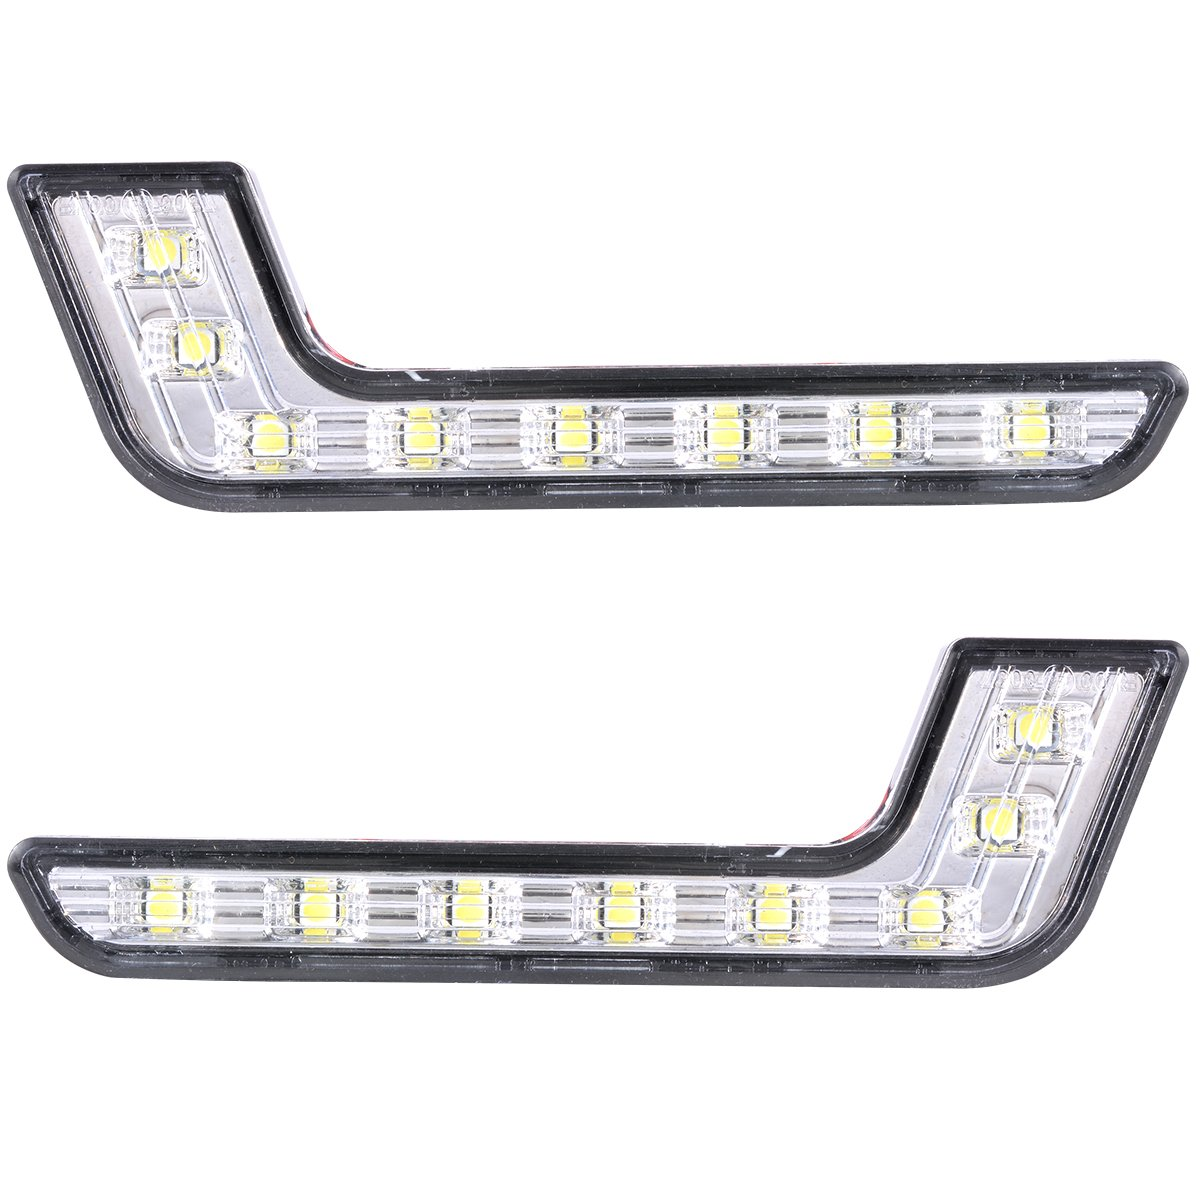 Buy White Led Powered Front Fog Light Kit With Grille Insert And Volkswagen Wiring Looms Xcsource 2pcs 8 Drl Daytime Running L Shape For Mercedes Benz Ma145